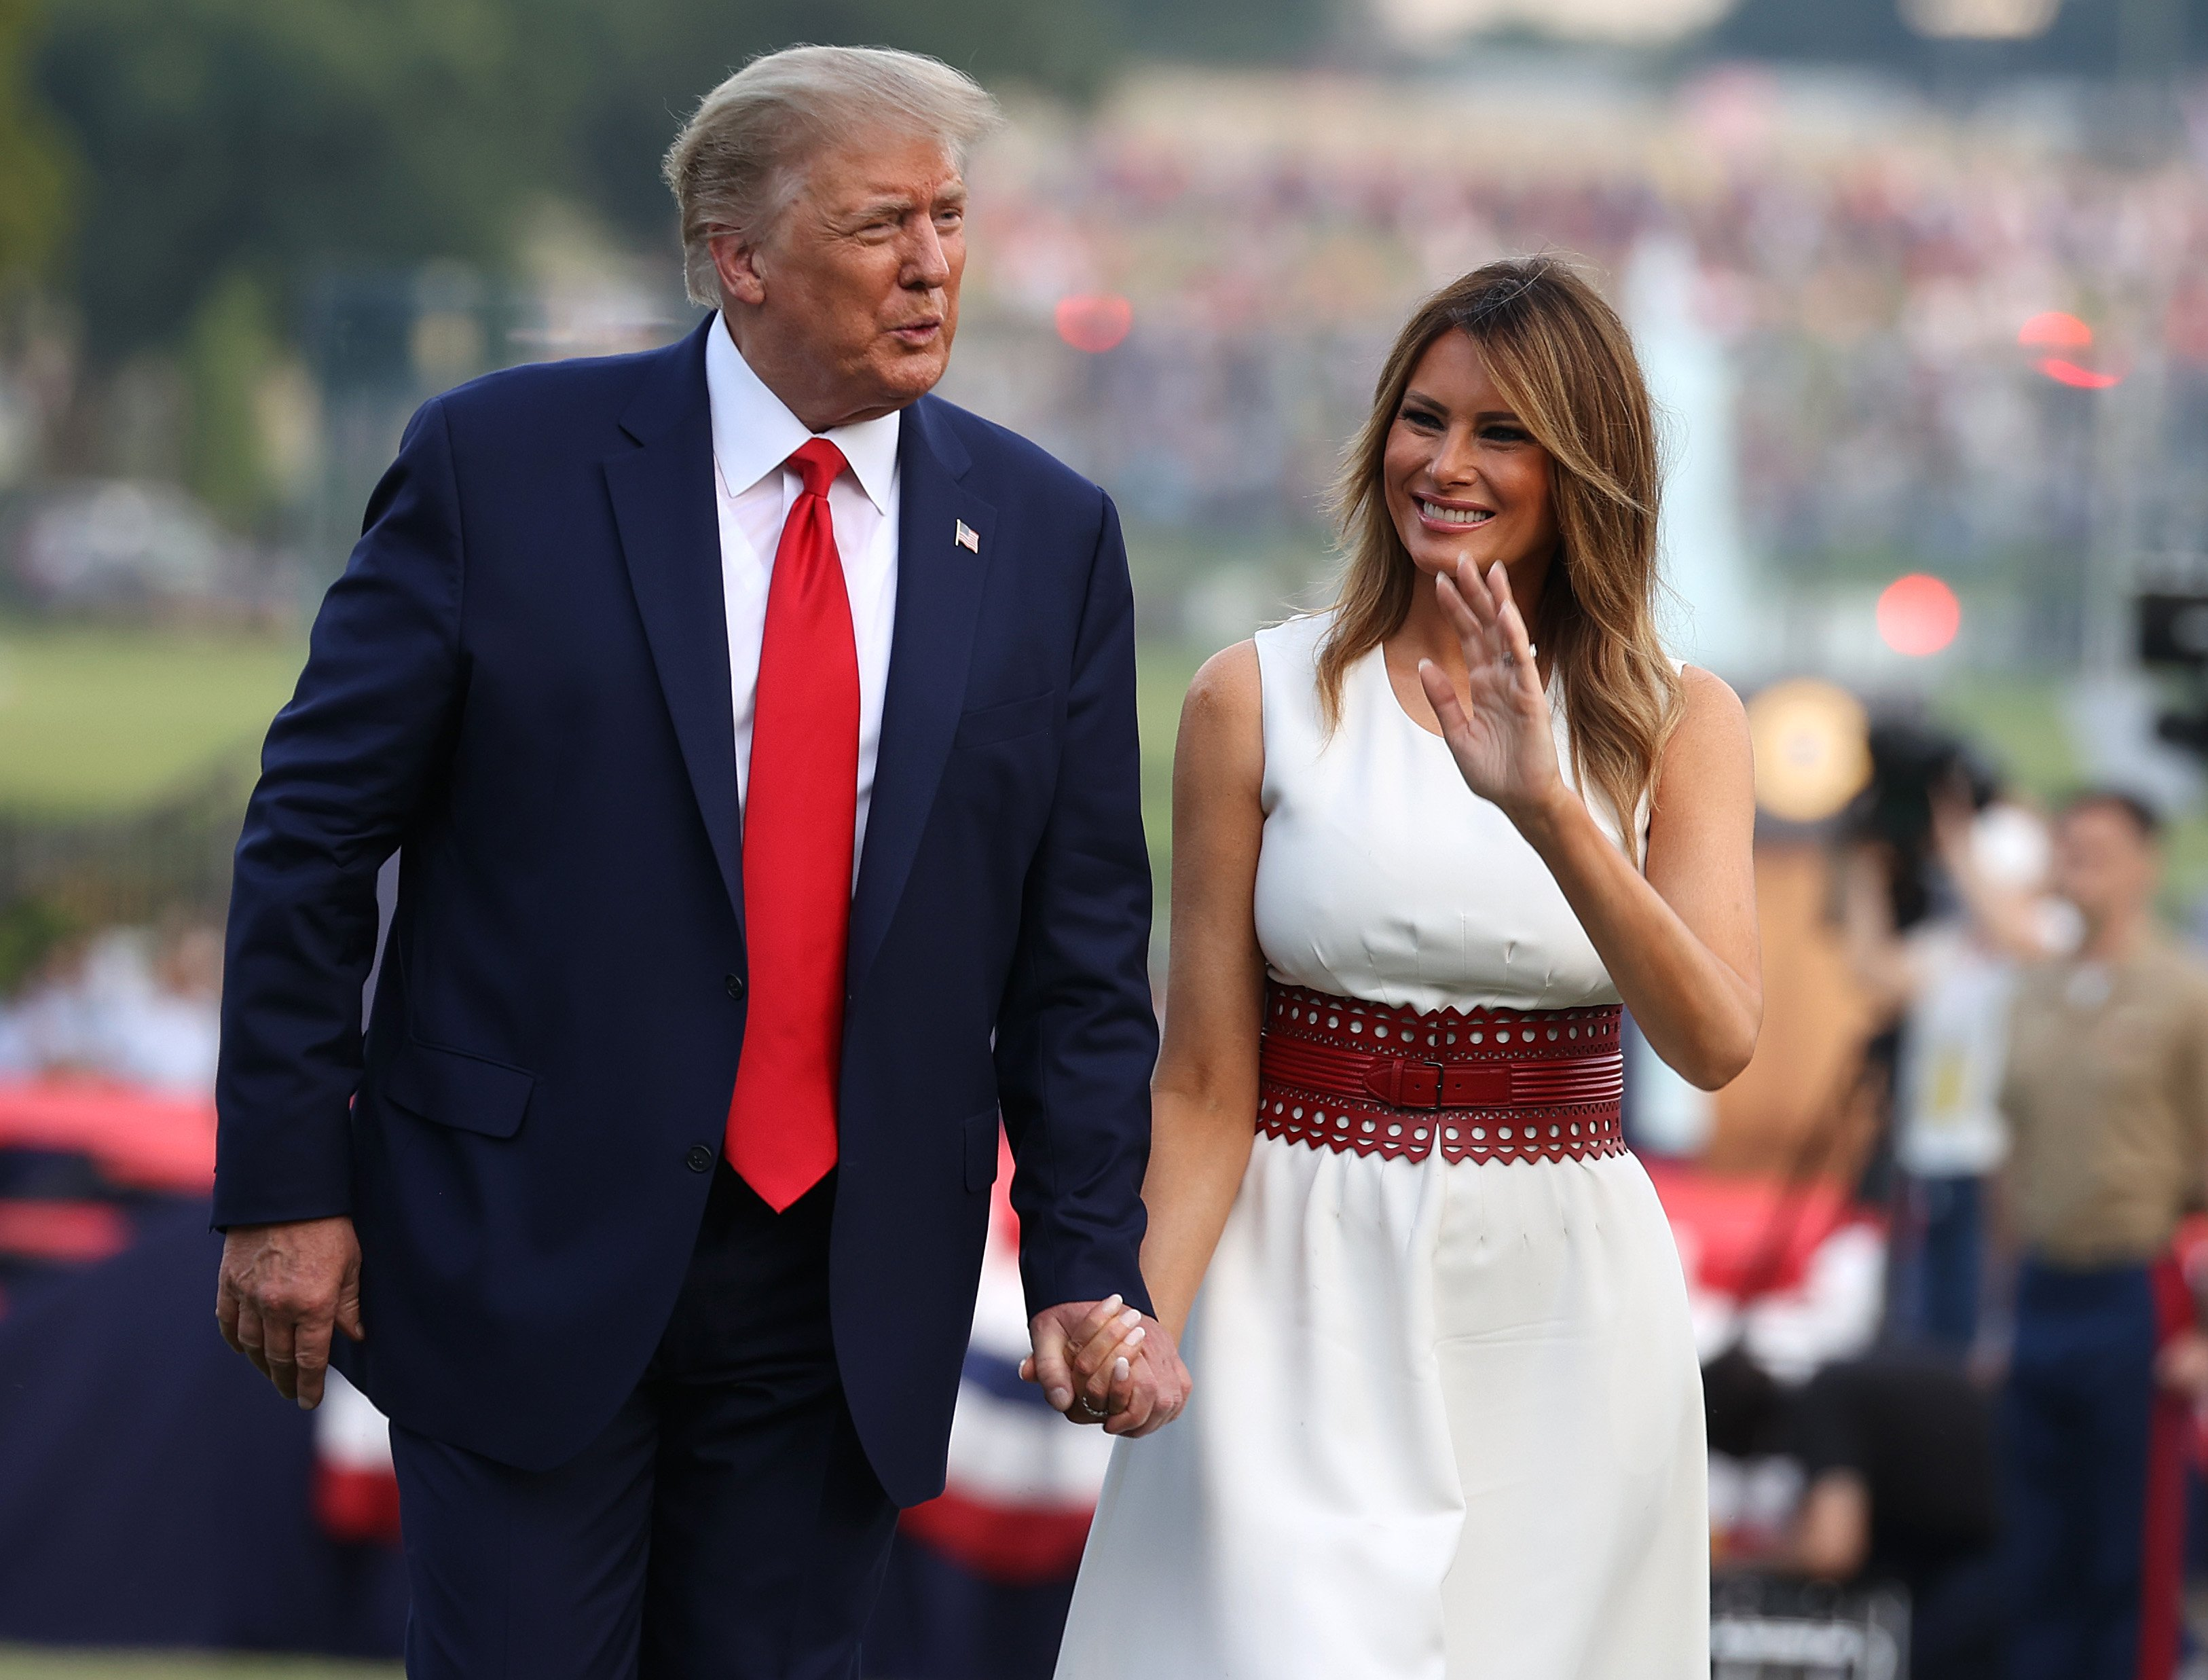 "WASHINGTON, DC - JULY 04: President Donald Trump and first Lady Melania Trump walk along the South Lawn during an event at the White House on July 04, 2020 in Washington, DC. President Trump is hosting a ""Salute to America"" celebration that includes flyovers by military aircraft and a large fireworks display. (Photo by Tasos Katopodis/Getty Images)"